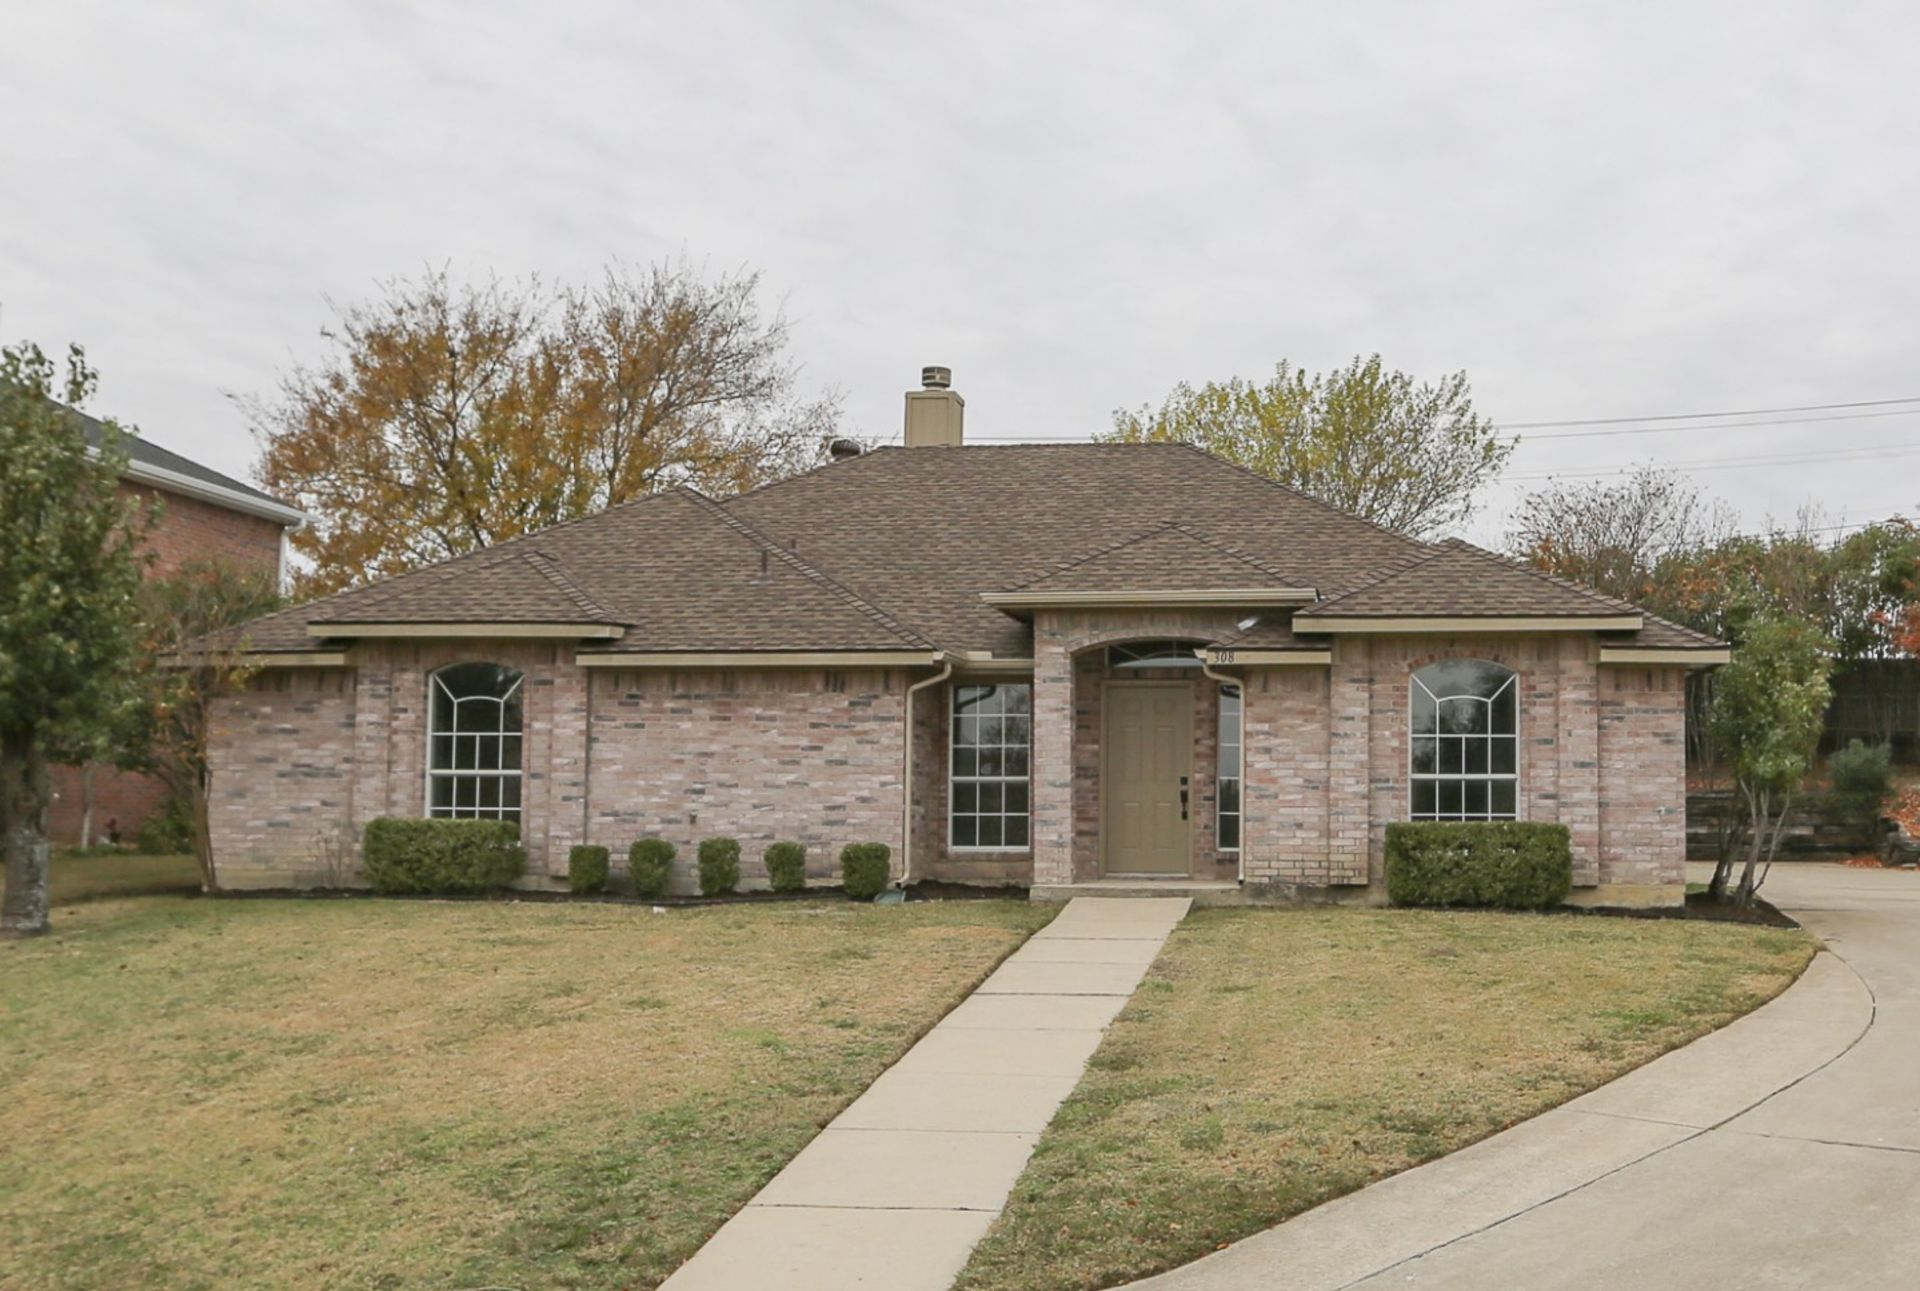 BEAUTIFUL 4 BED 2 BATH WYLIE HOME FOR SALE IS MOVE IN READY!!